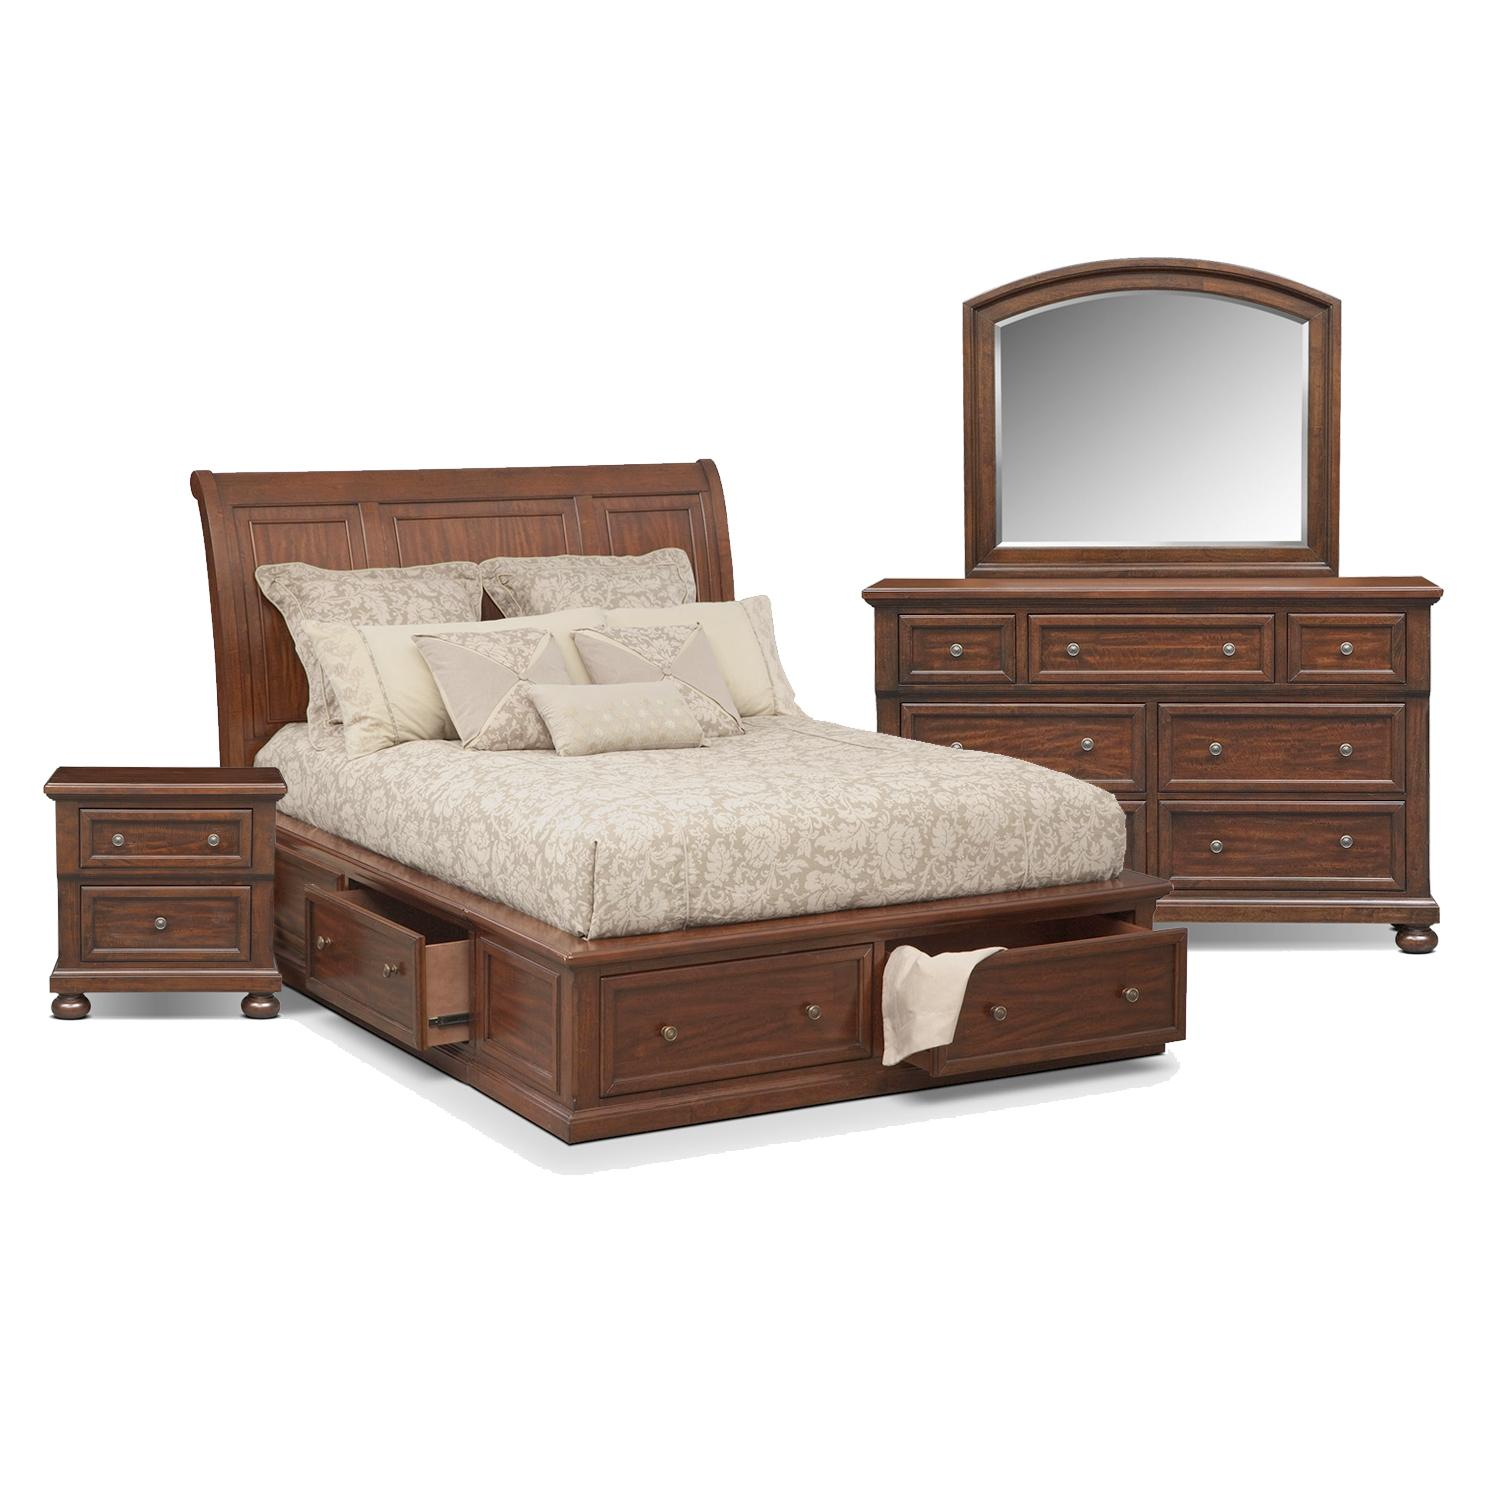 Bedroom Sets Evansville Indiana bedroom furniture | value city furniture